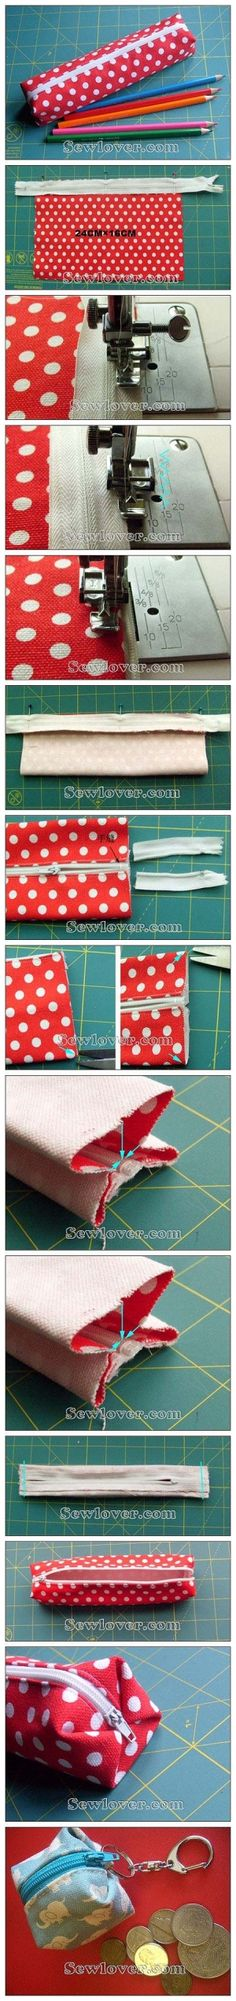 Tutorial for boxy pouch by michelle.green.585559